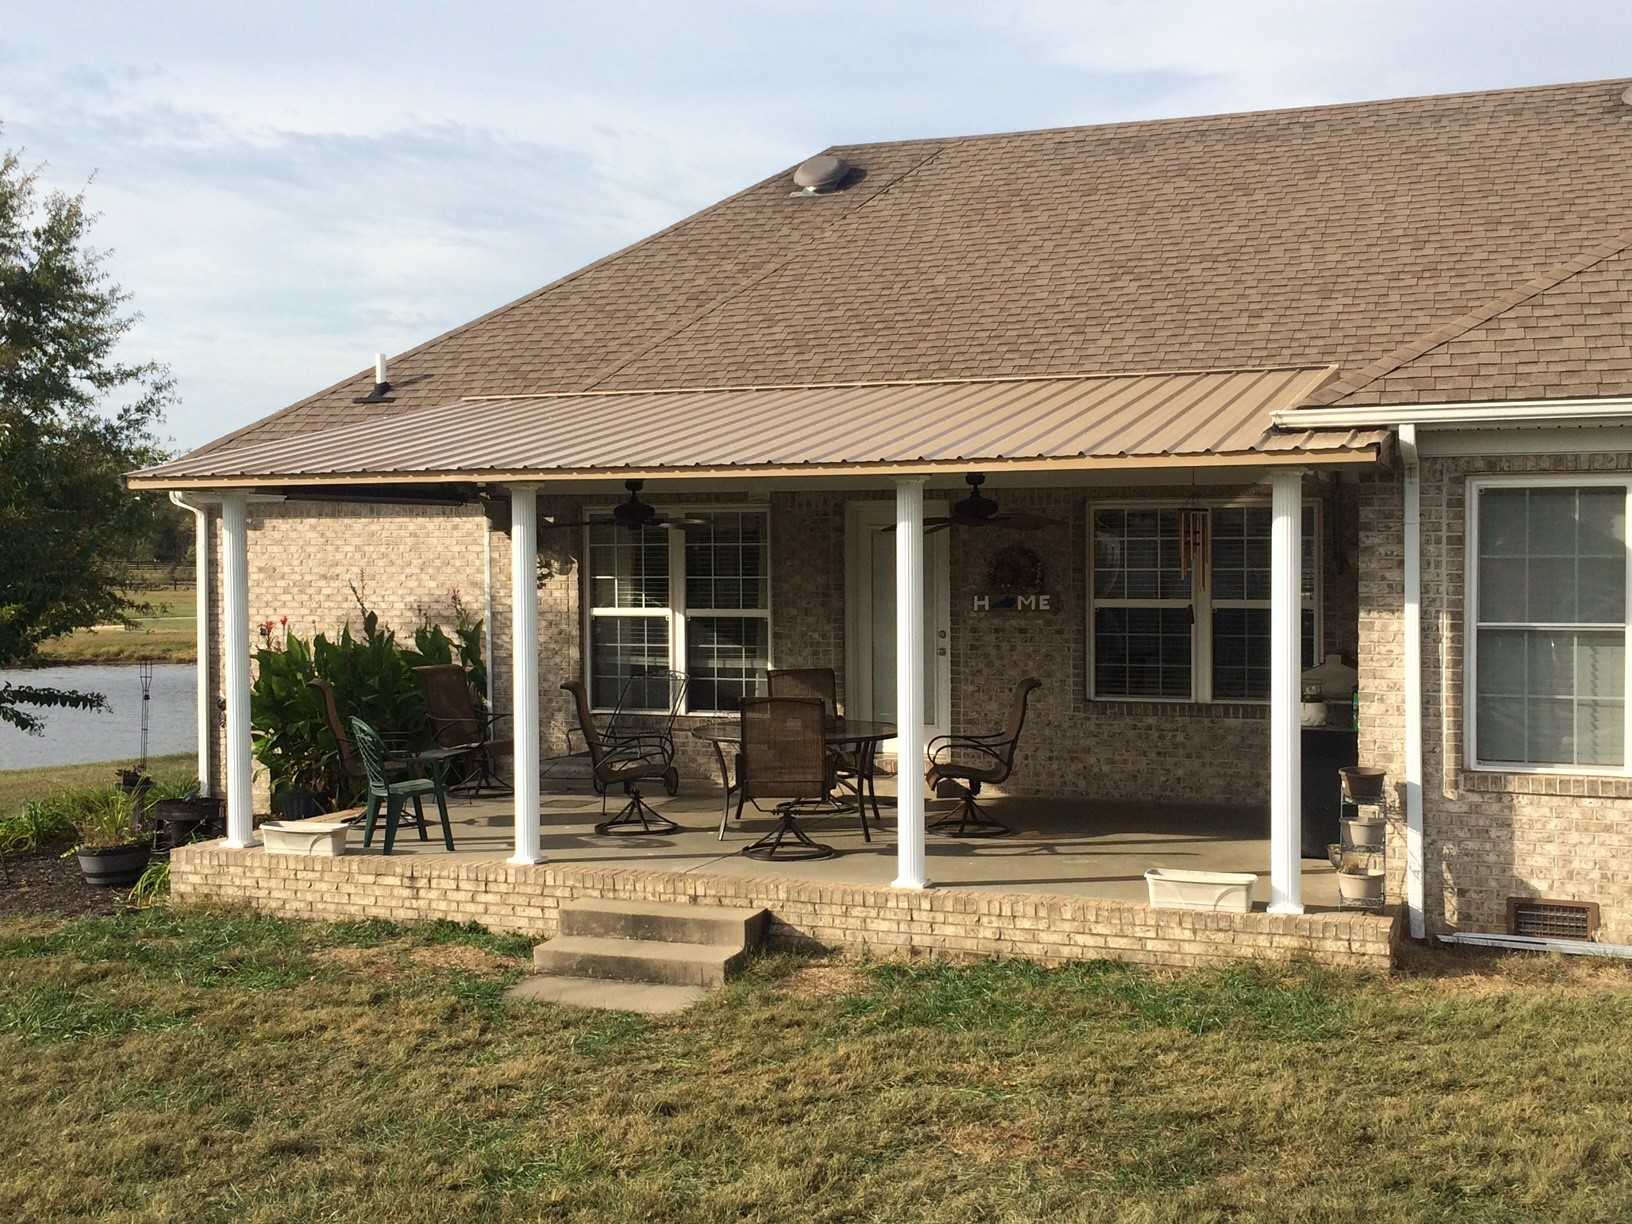 Roofing Service Bowling Green Ky : U s awning company coupons near me in bowling green